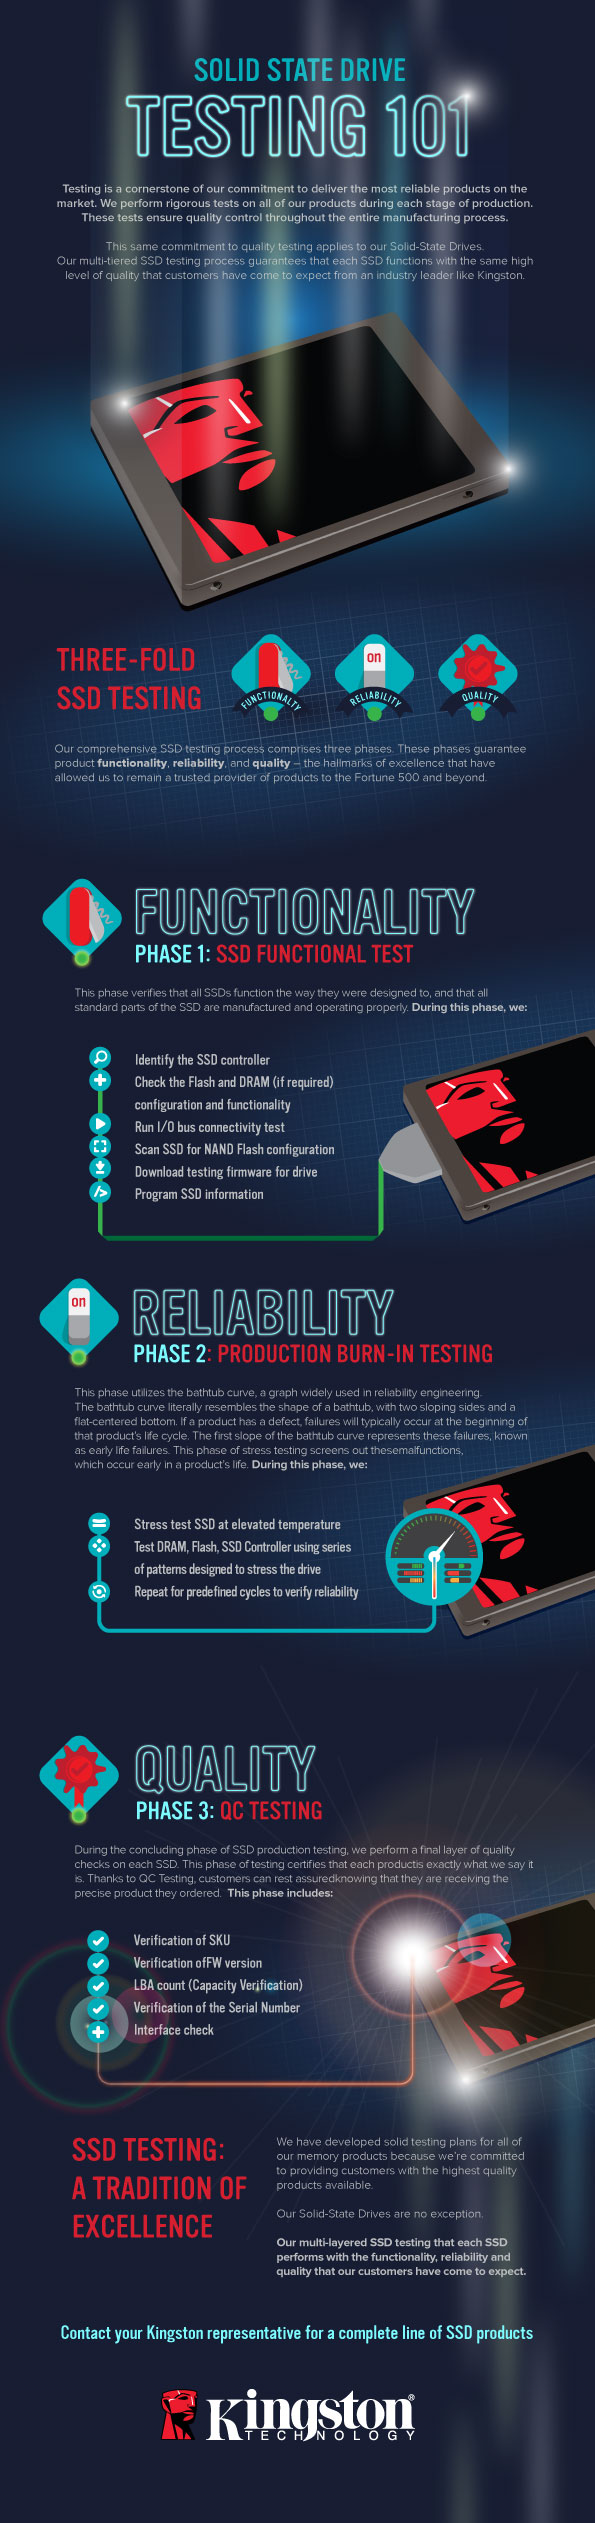 Solid-State Drive Testing 101